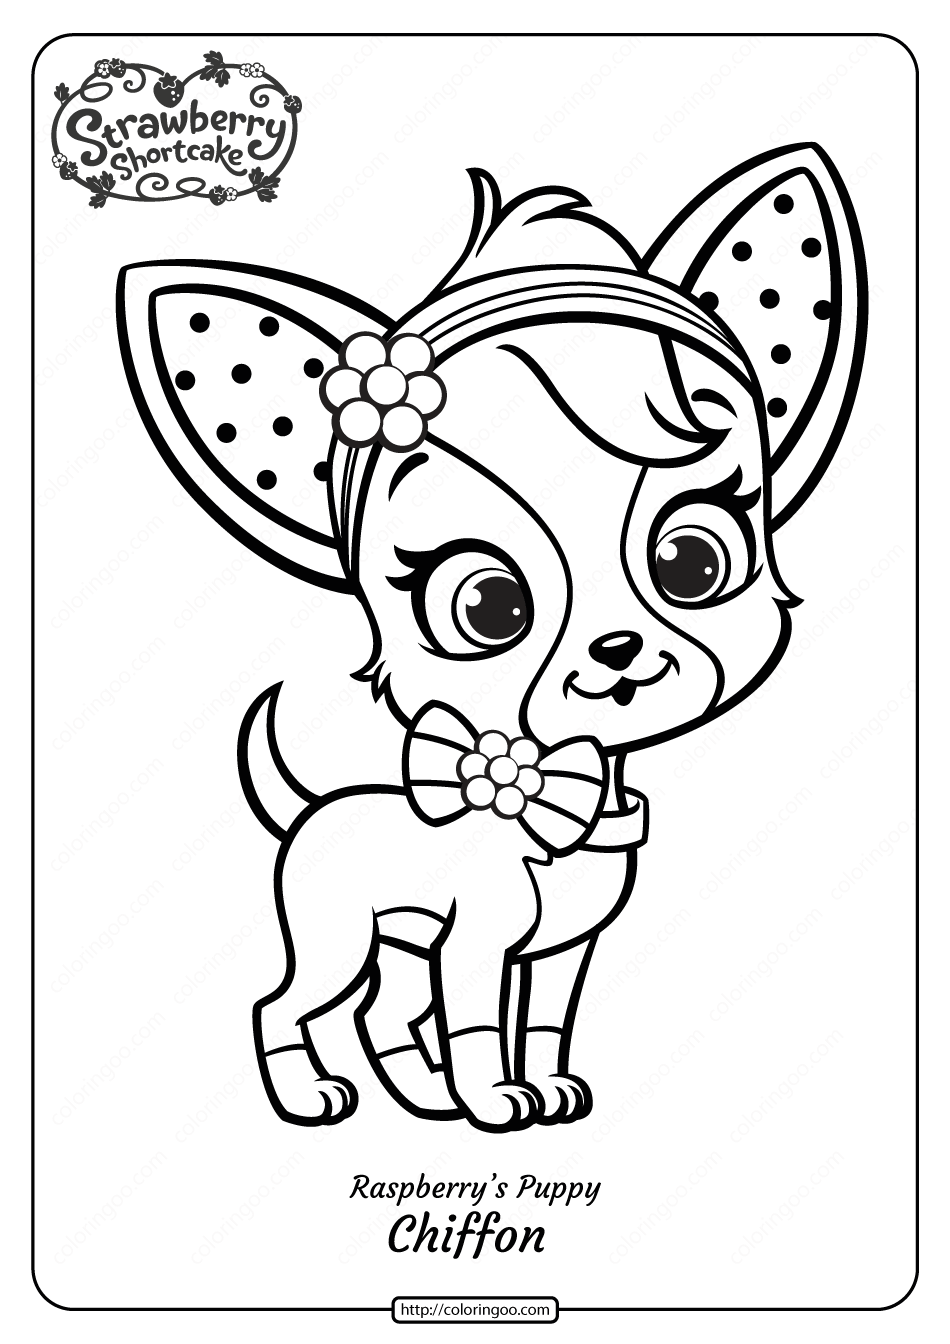 Printable Raspberry S Puppy Chiffon Coloring Page Puppy Coloring Pages Dog Coloring Page Cartoon Coloring Pages [ 1344 x 950 Pixel ]